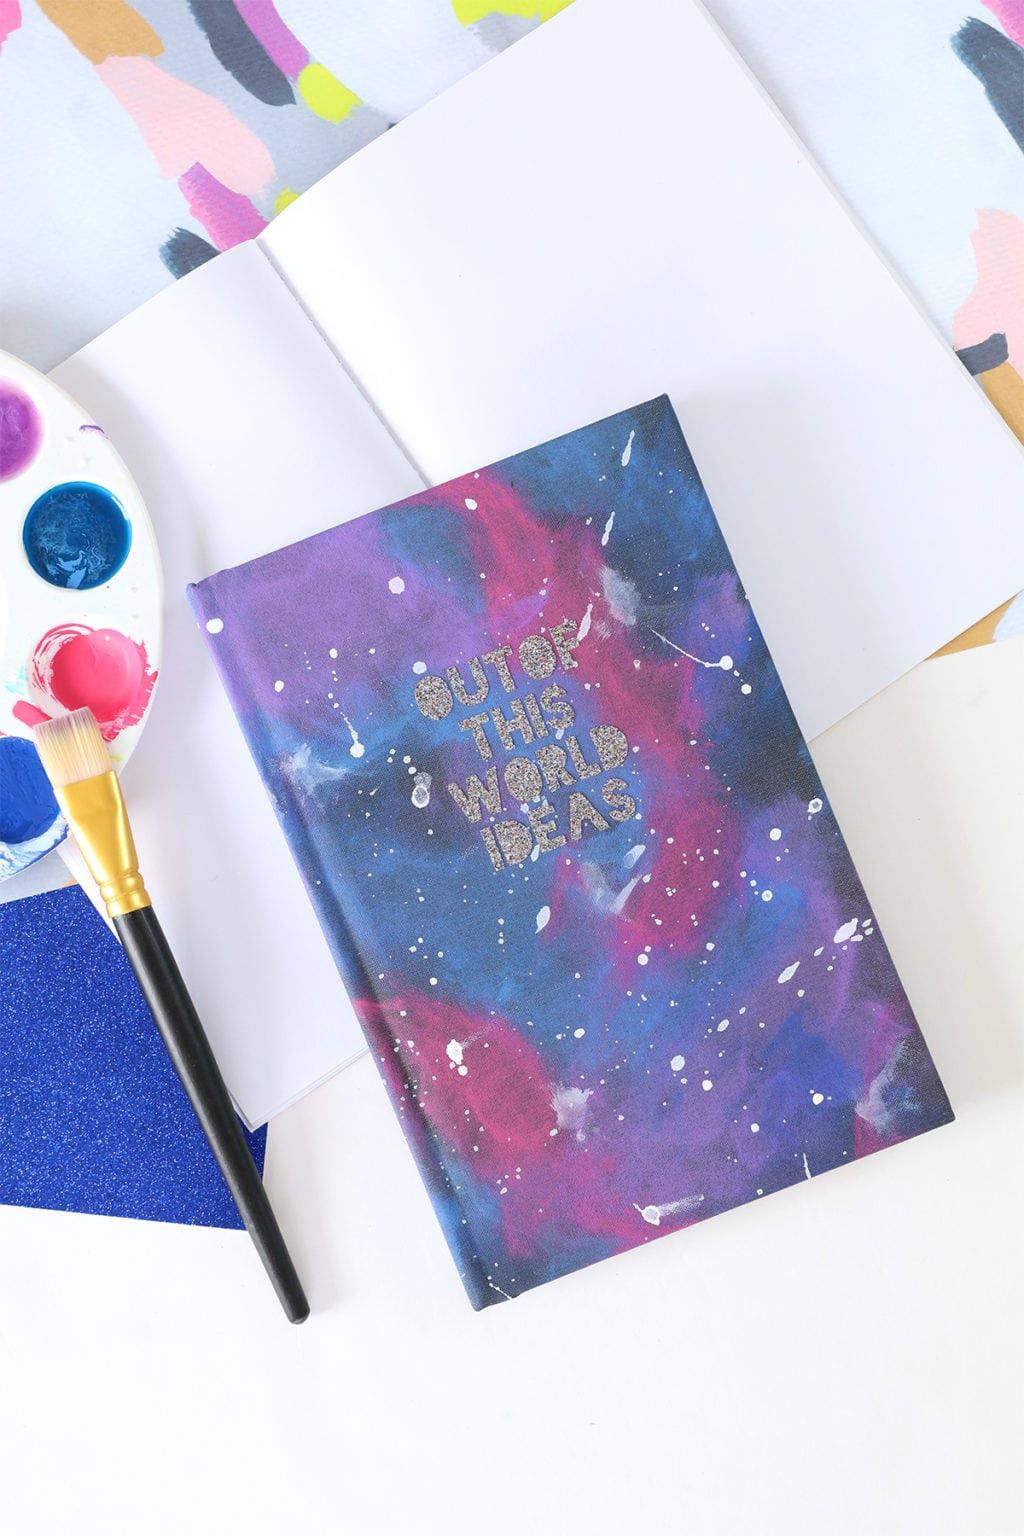 Best ideas about Galaxy Paint DIY . Save or Pin DIY Galaxy Painted Notebook Now.